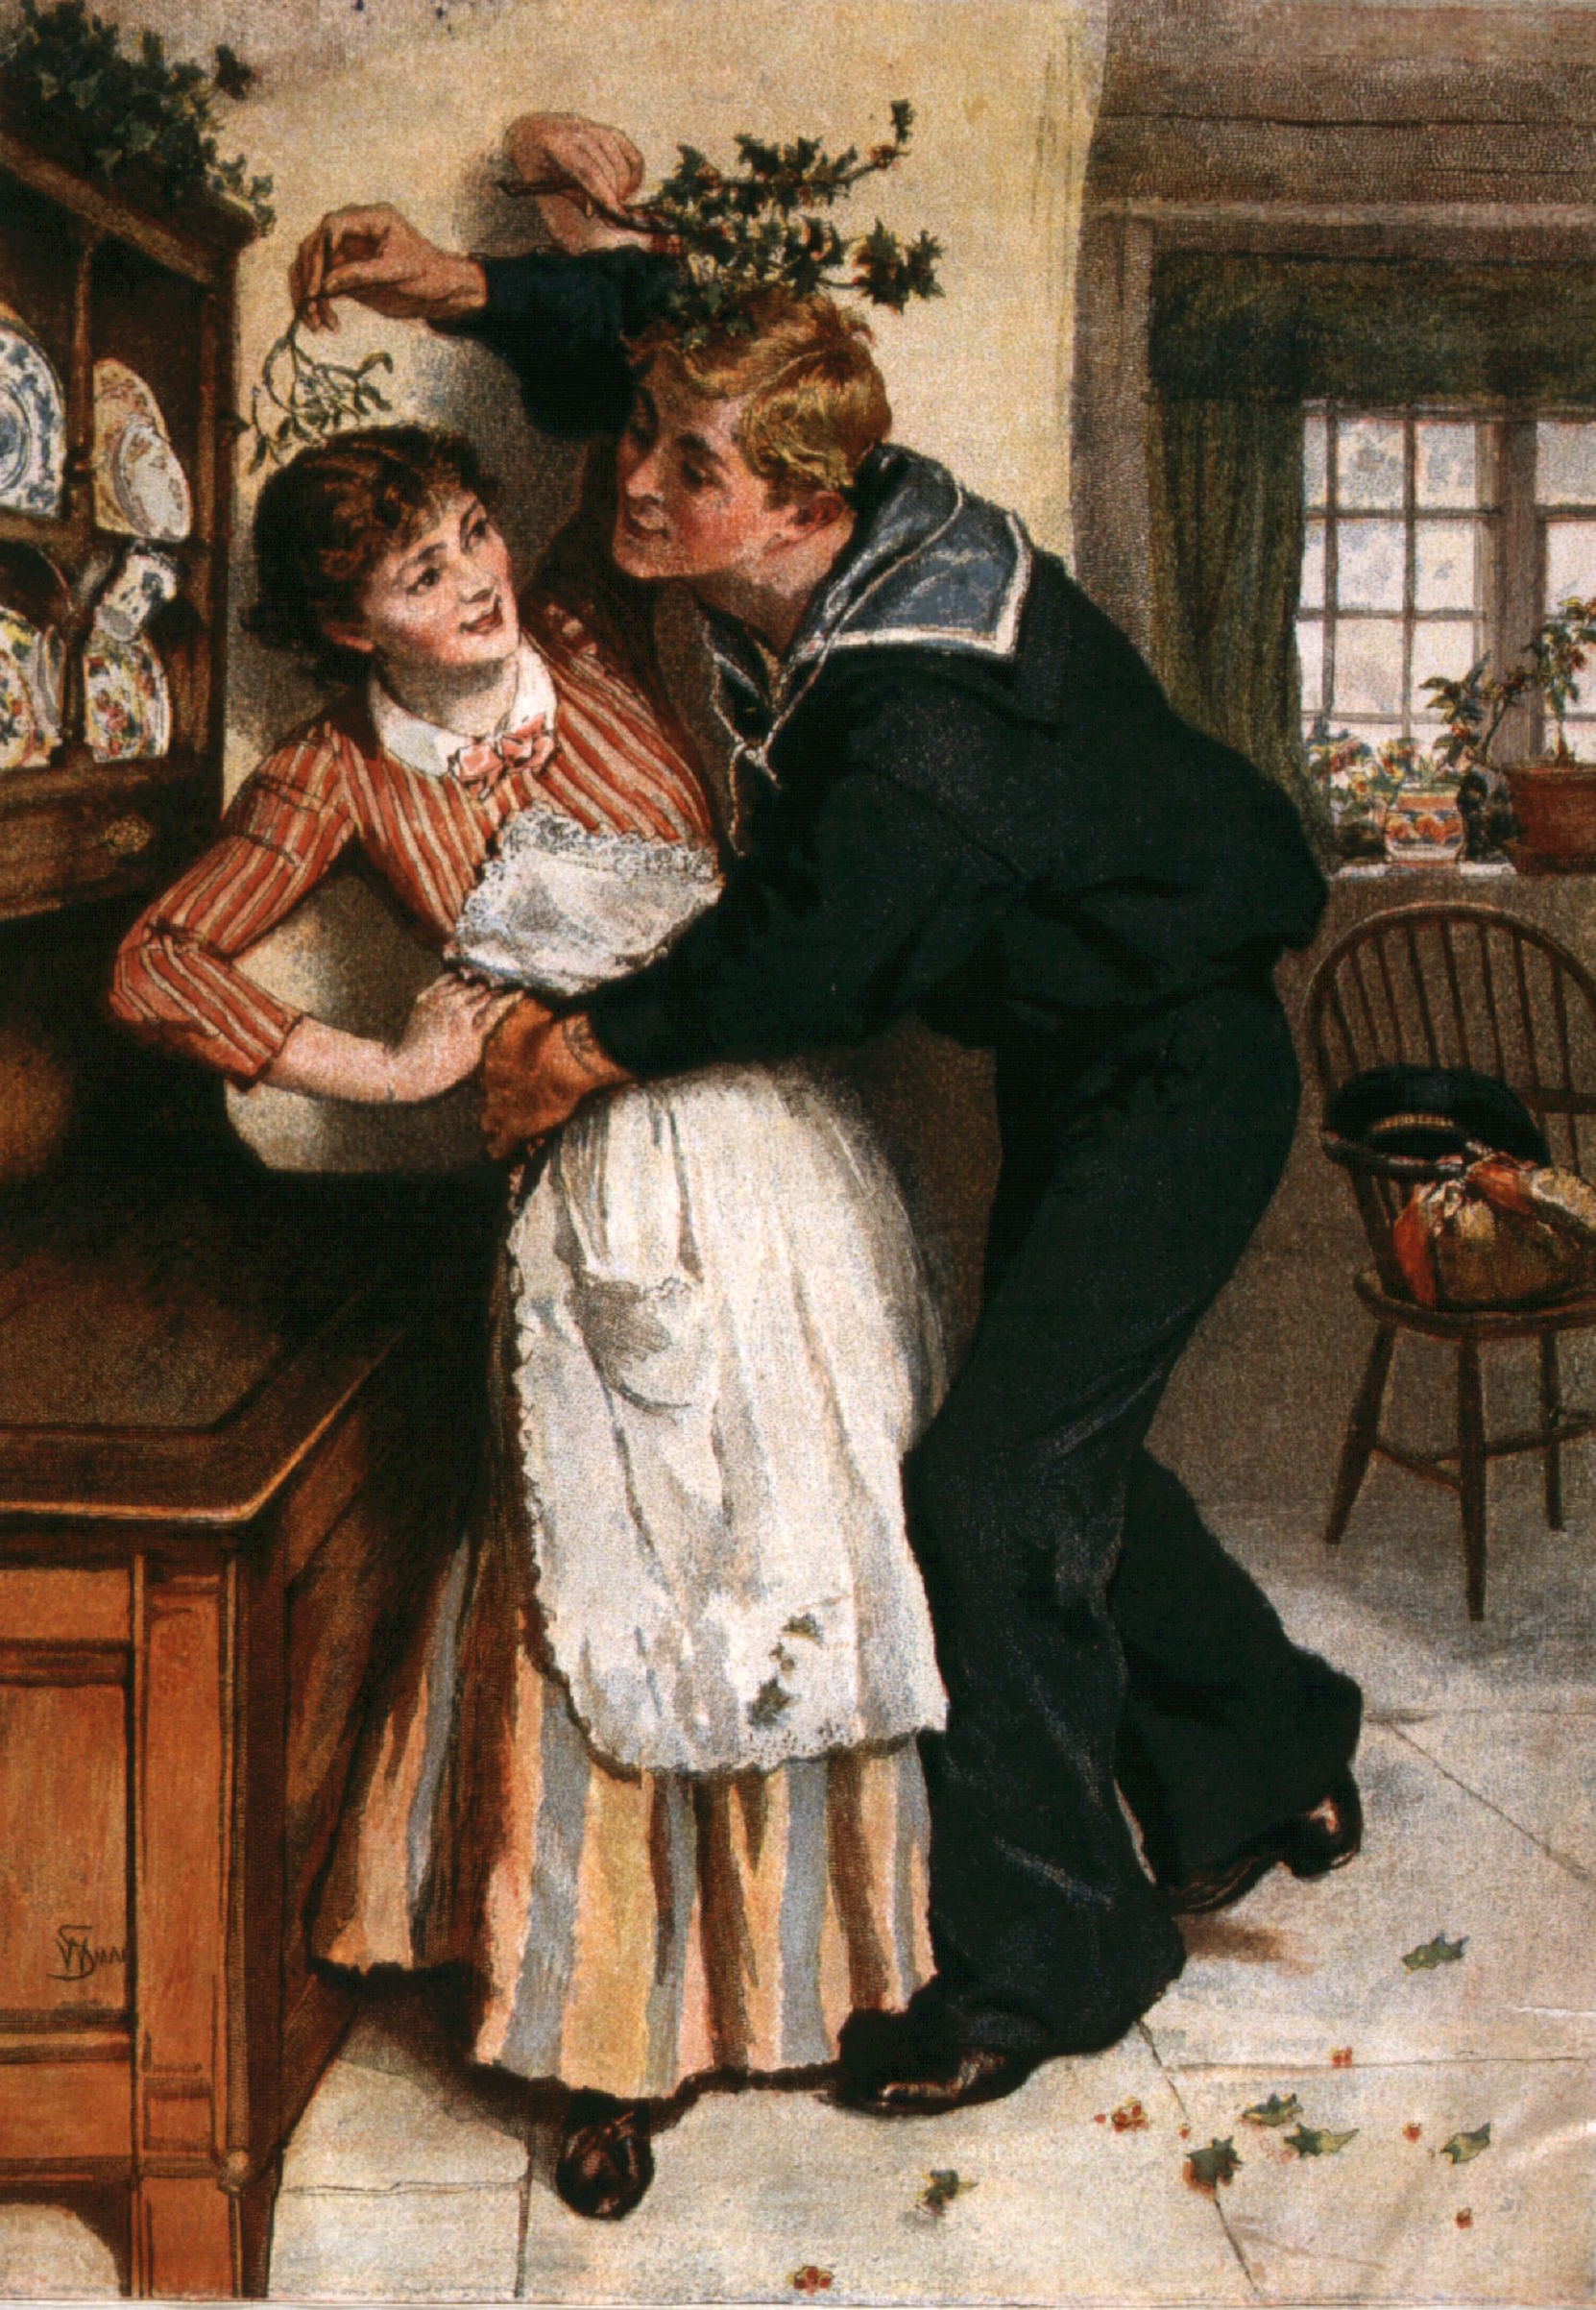 circa 1890:  A sailor tries to kiss a young woman under a sprig of mistletoe.  William Small.